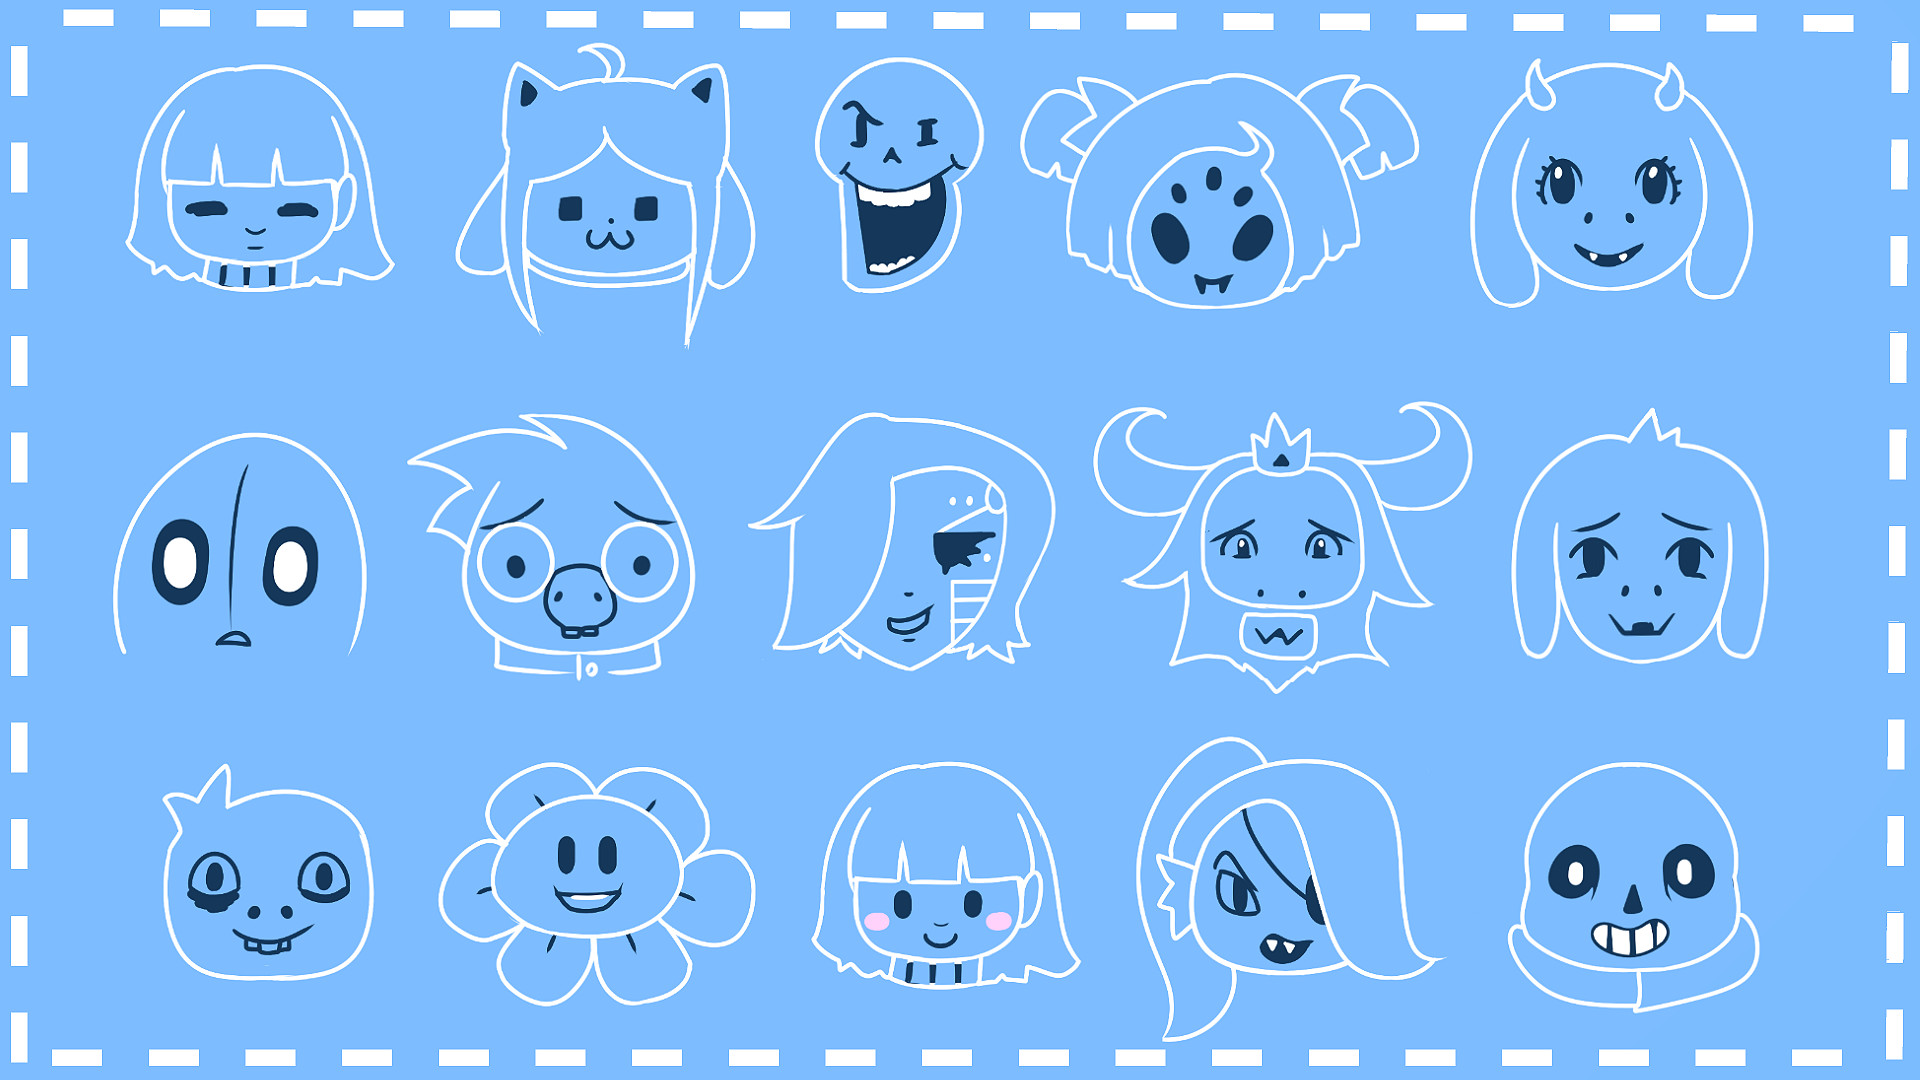 1920x1080 High Quality Undertale Images Collection for Desktop